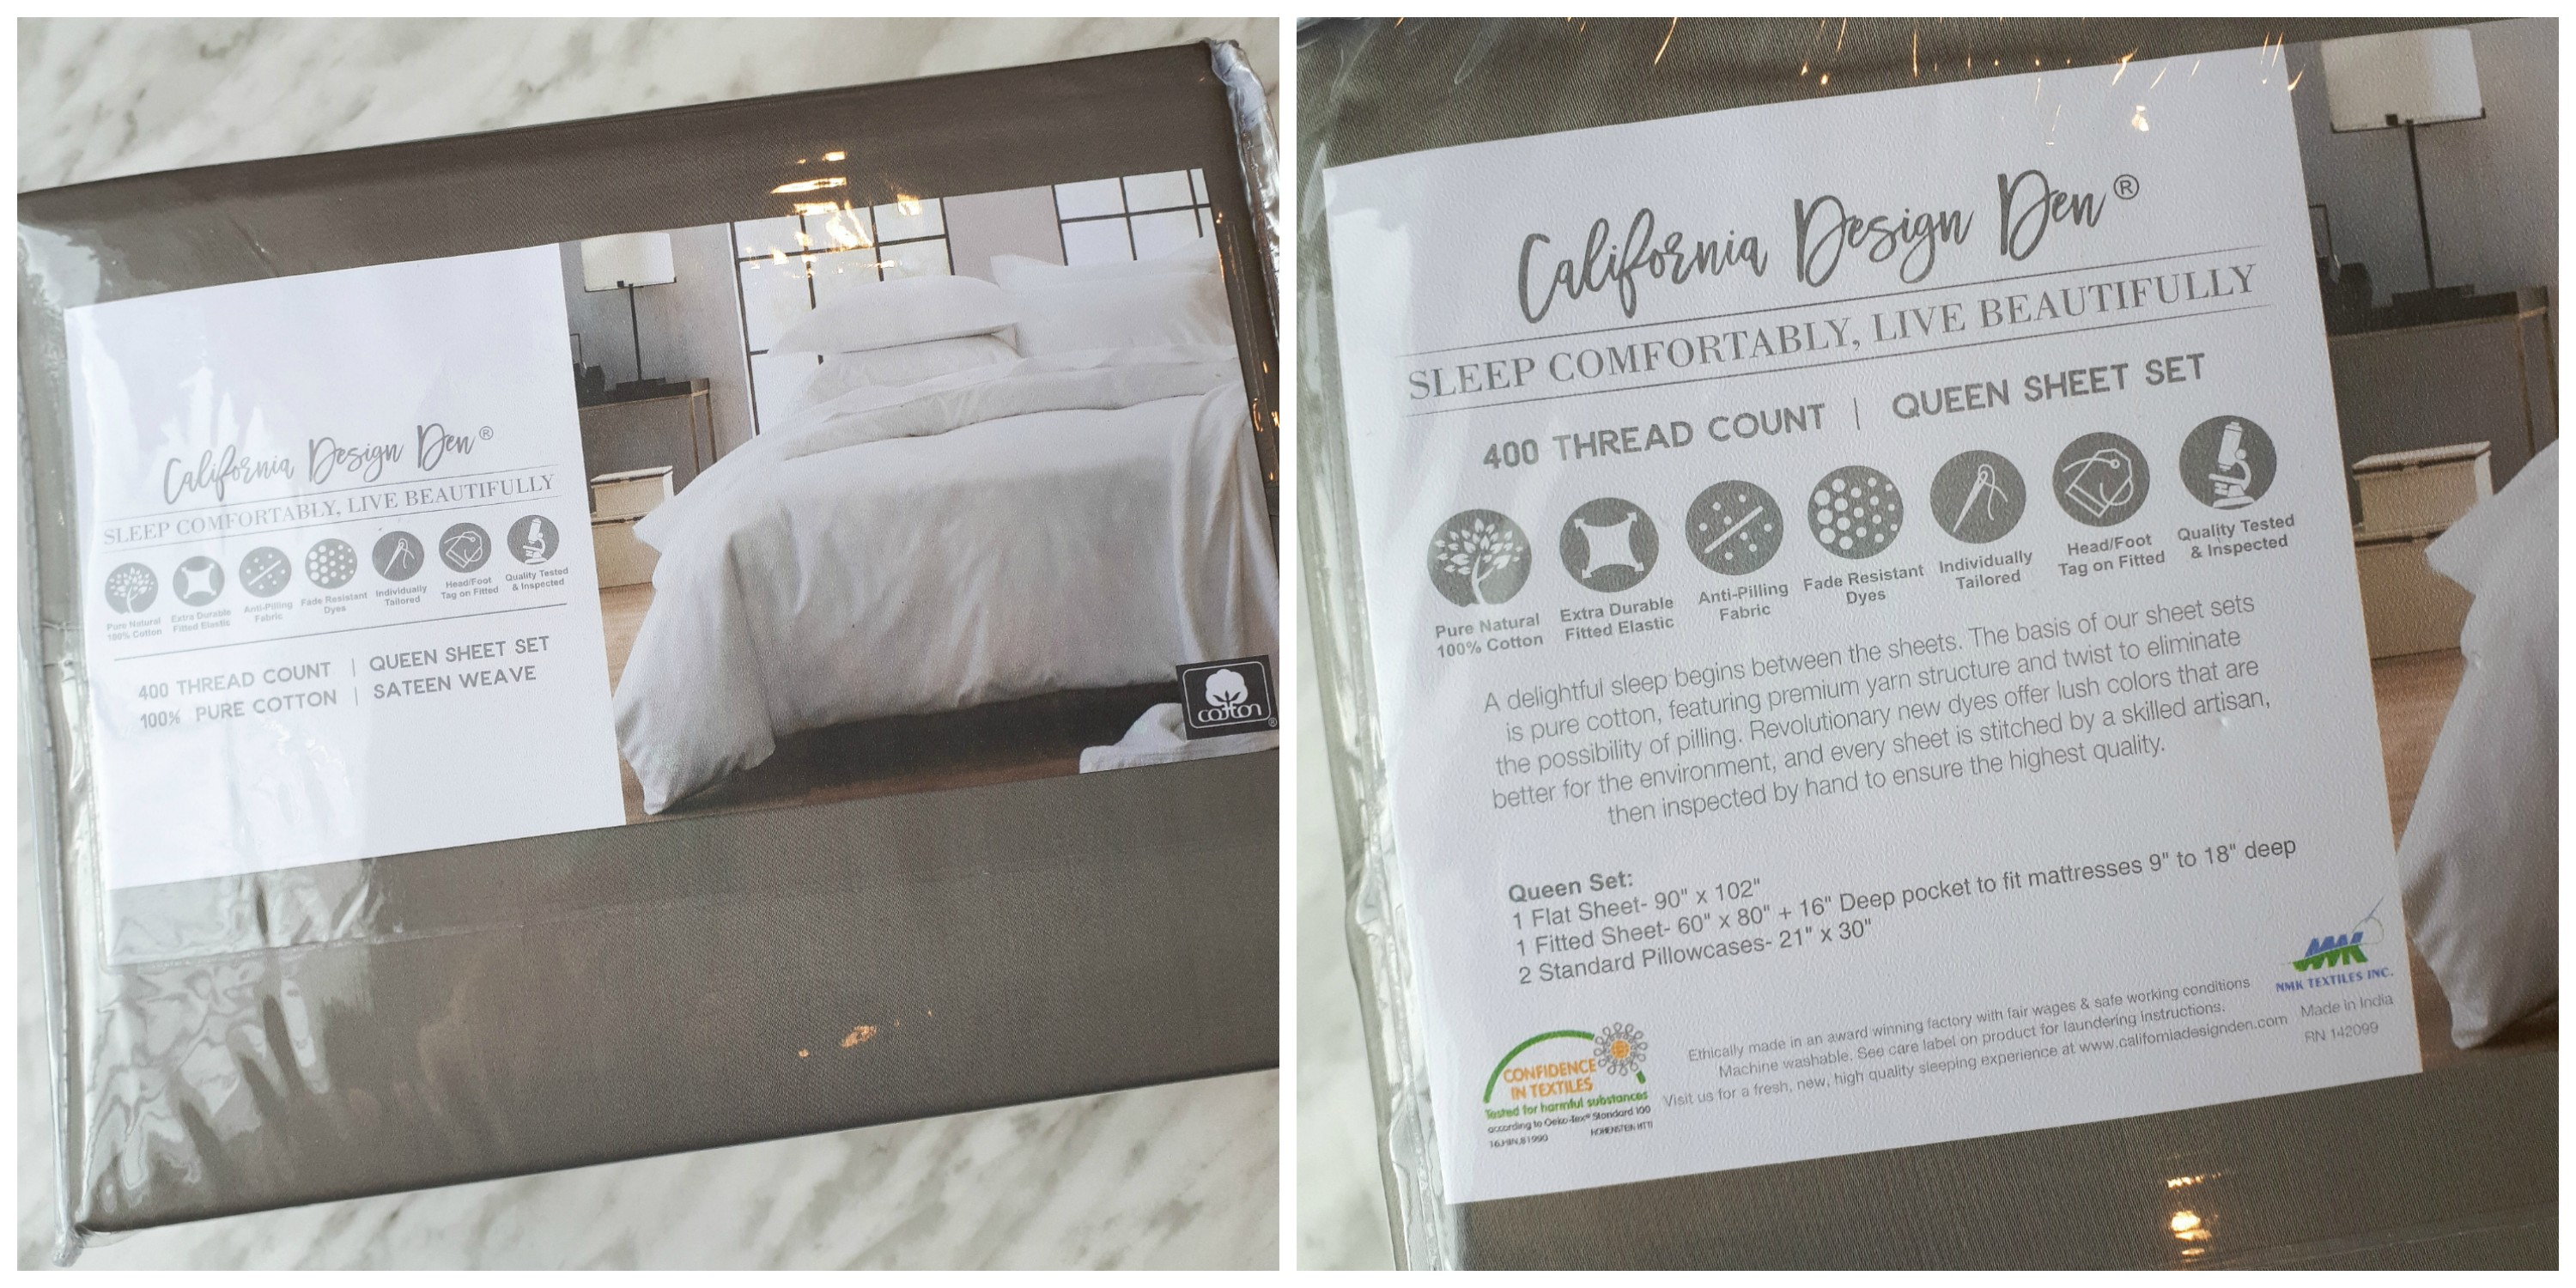 These California Design Den 100% cotton sheets are the real deal! They are so comfy and have a great weight to them. The sateen finish is delightful!